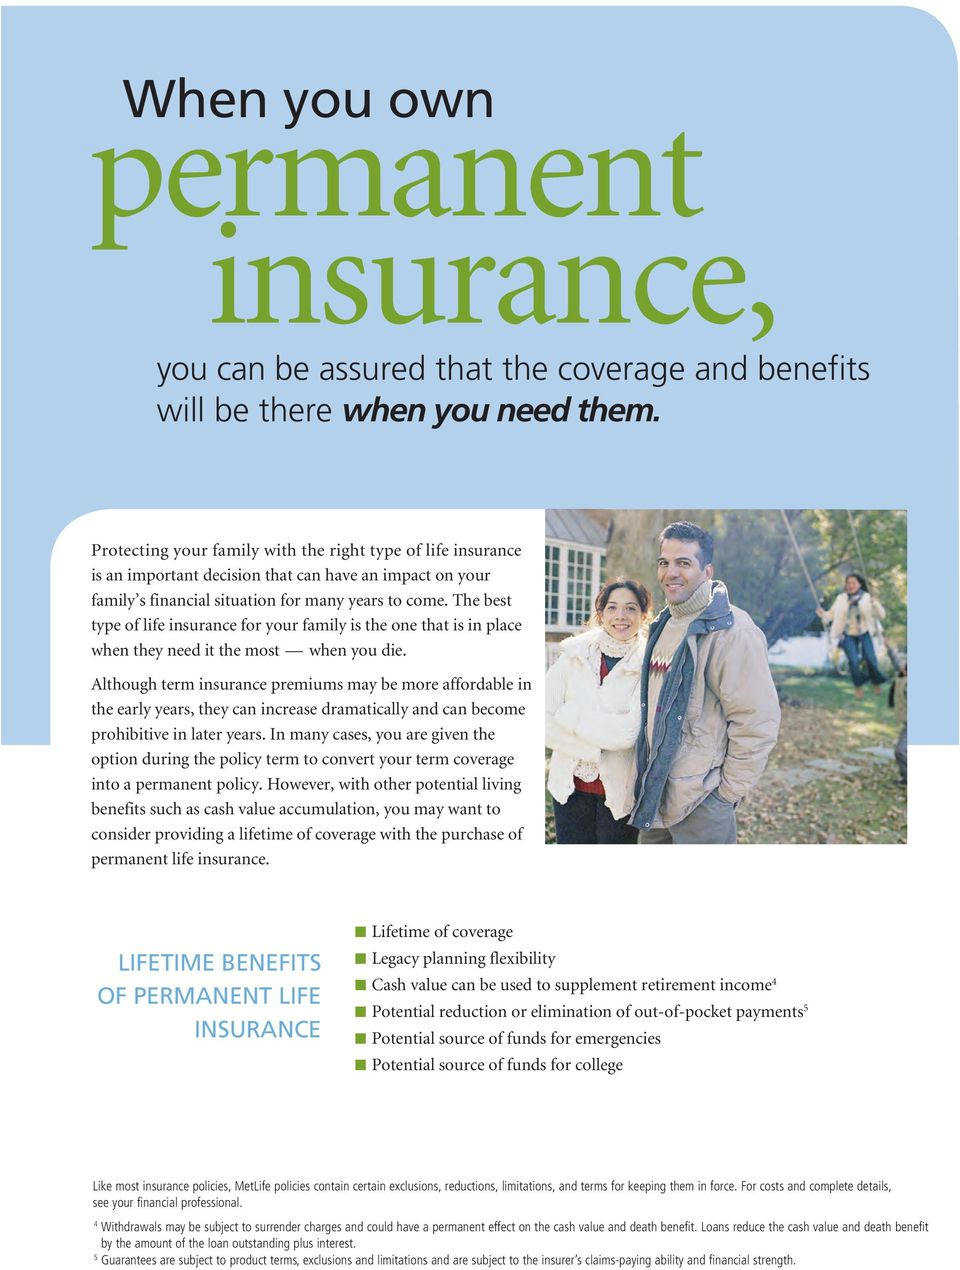 The best type of life insurance for your family is the one that is in place when they need it the most when you die.